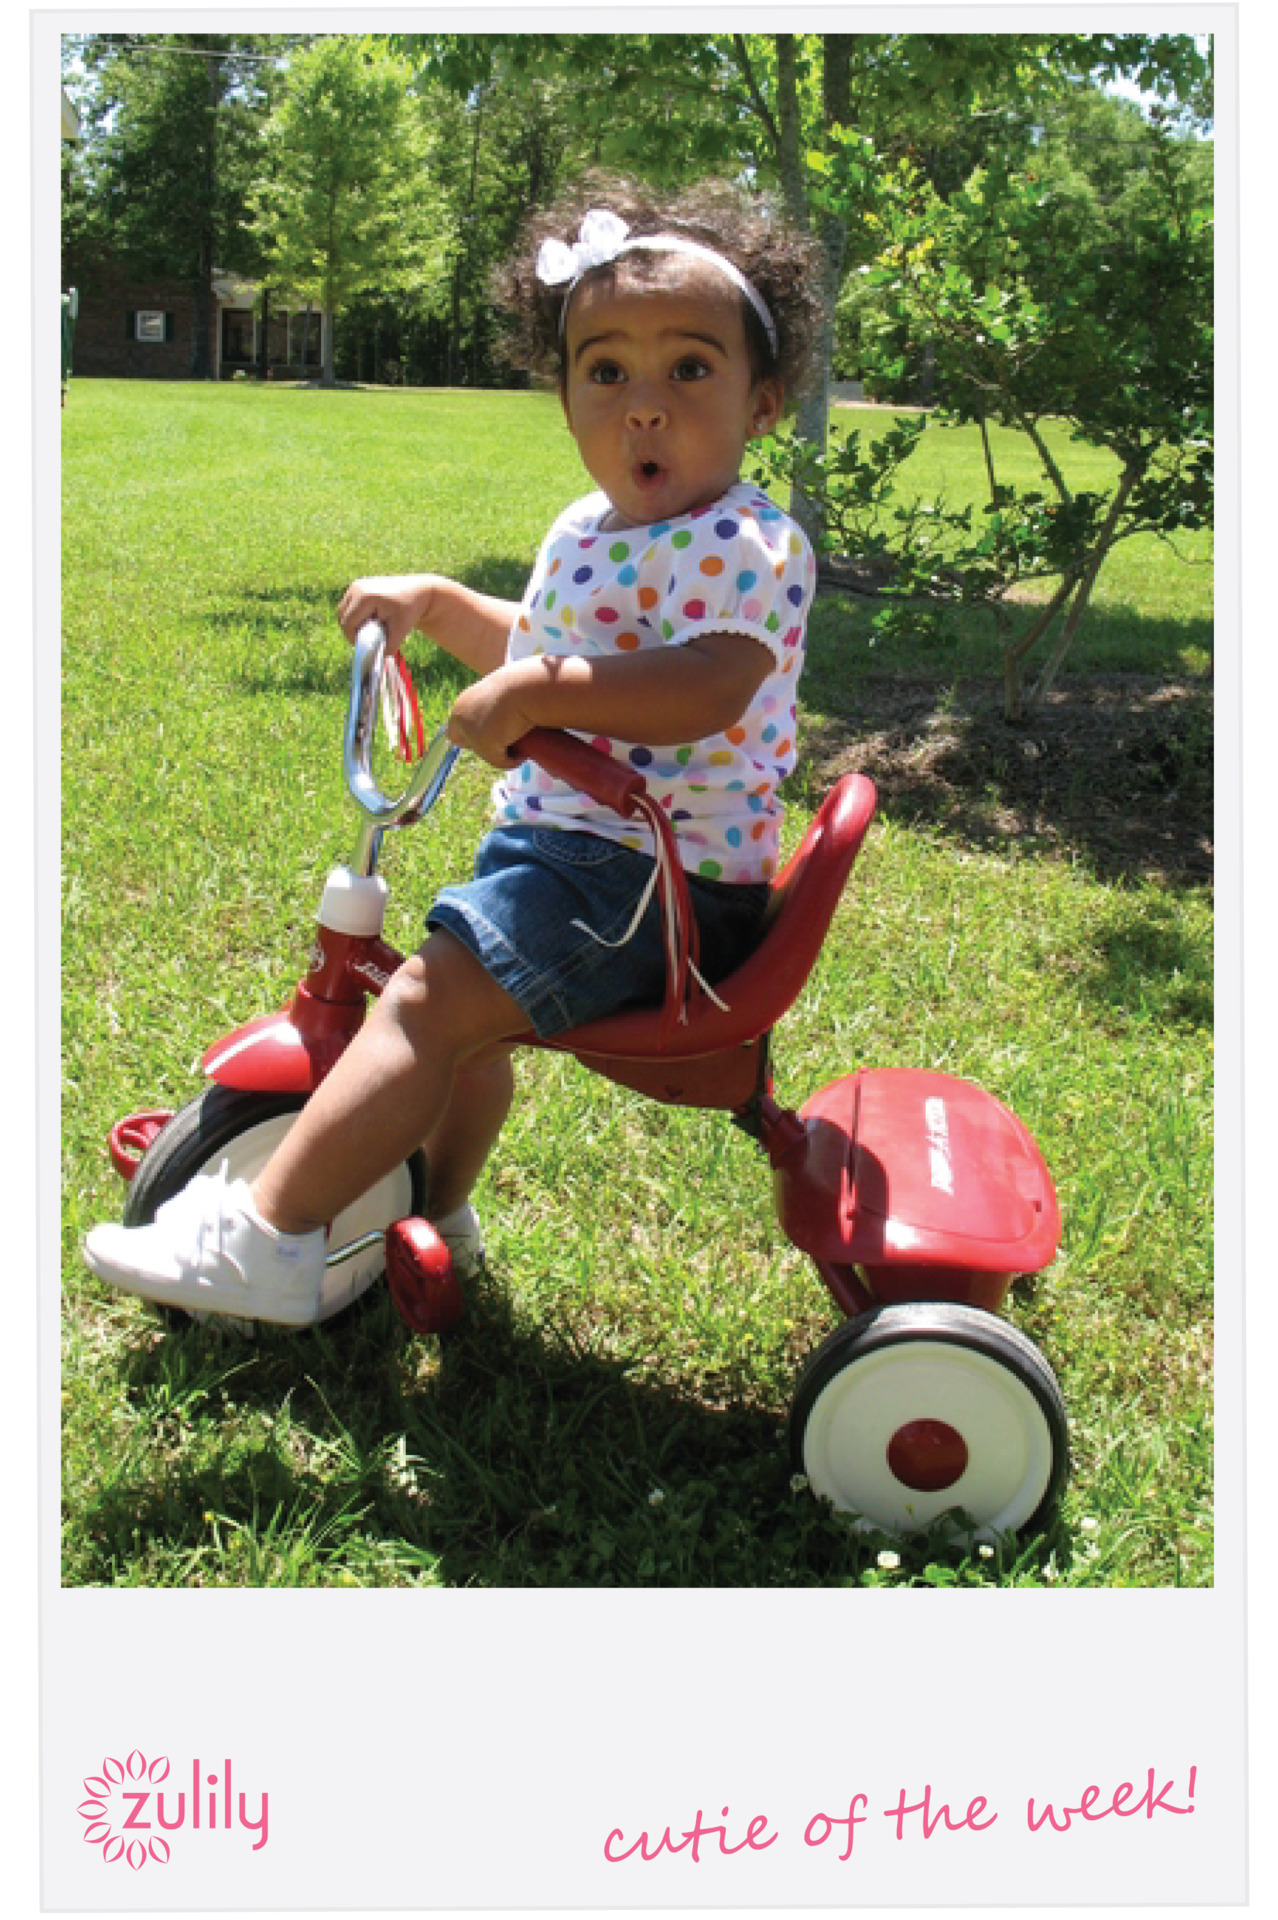 Nothing is better than a tricycle ride in the sun! Congrats to this little darling; looks like such a fun ride! Interested in submitting a snap of your cutie for a chance to win this week's contest? Simply submit on our zulily Cutie page here.